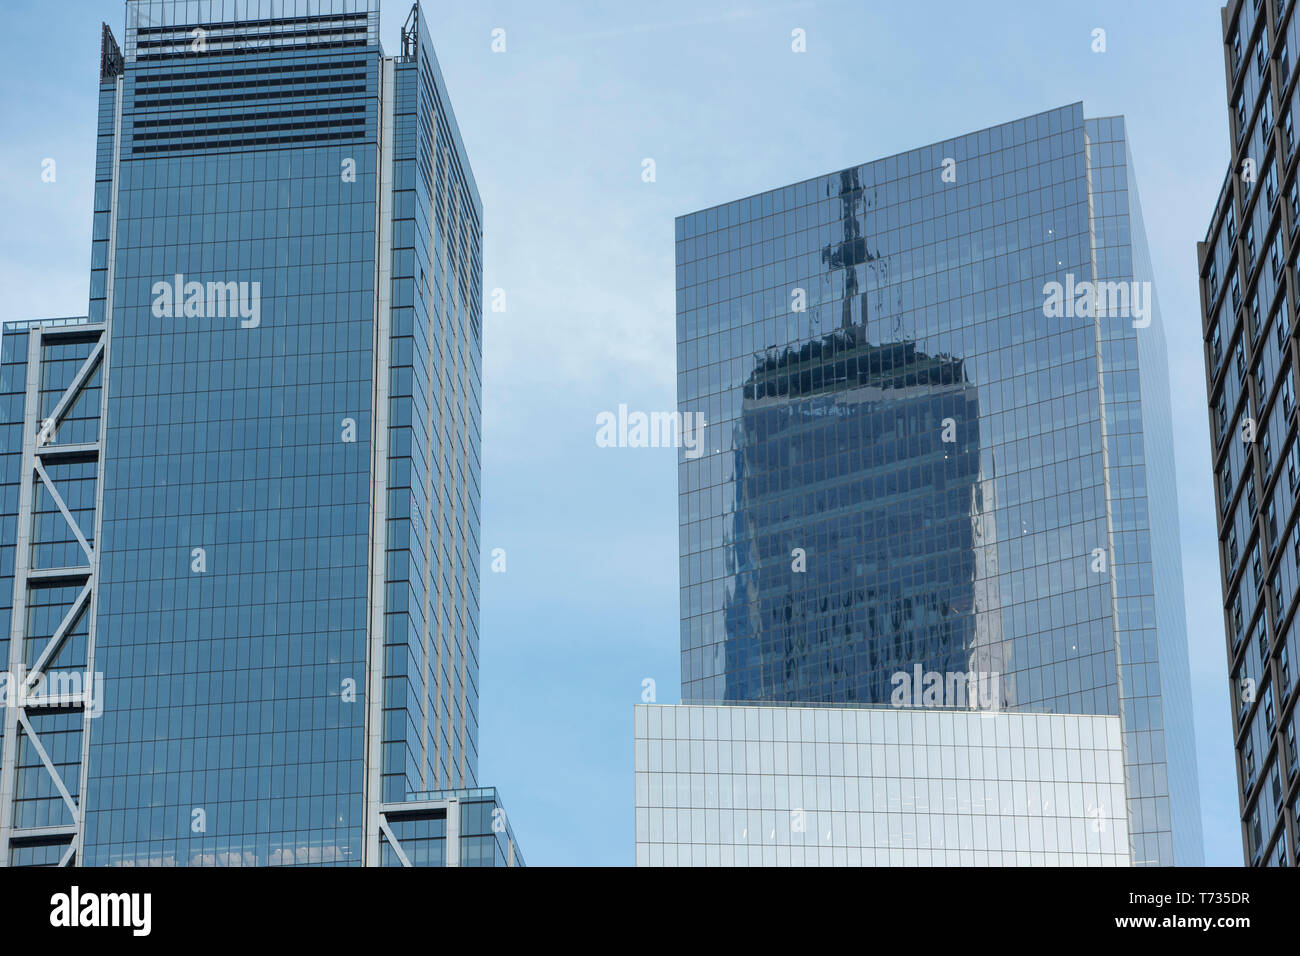 ONE WORLD TRADE CENTER (©LIBESKIND CHILDS GOTTESDIENER SOM 2016) REFLECTION IN SKYSCRAPERS DOWNTOWN MANHATTAN NEW YORK CITY USA - Stock Image